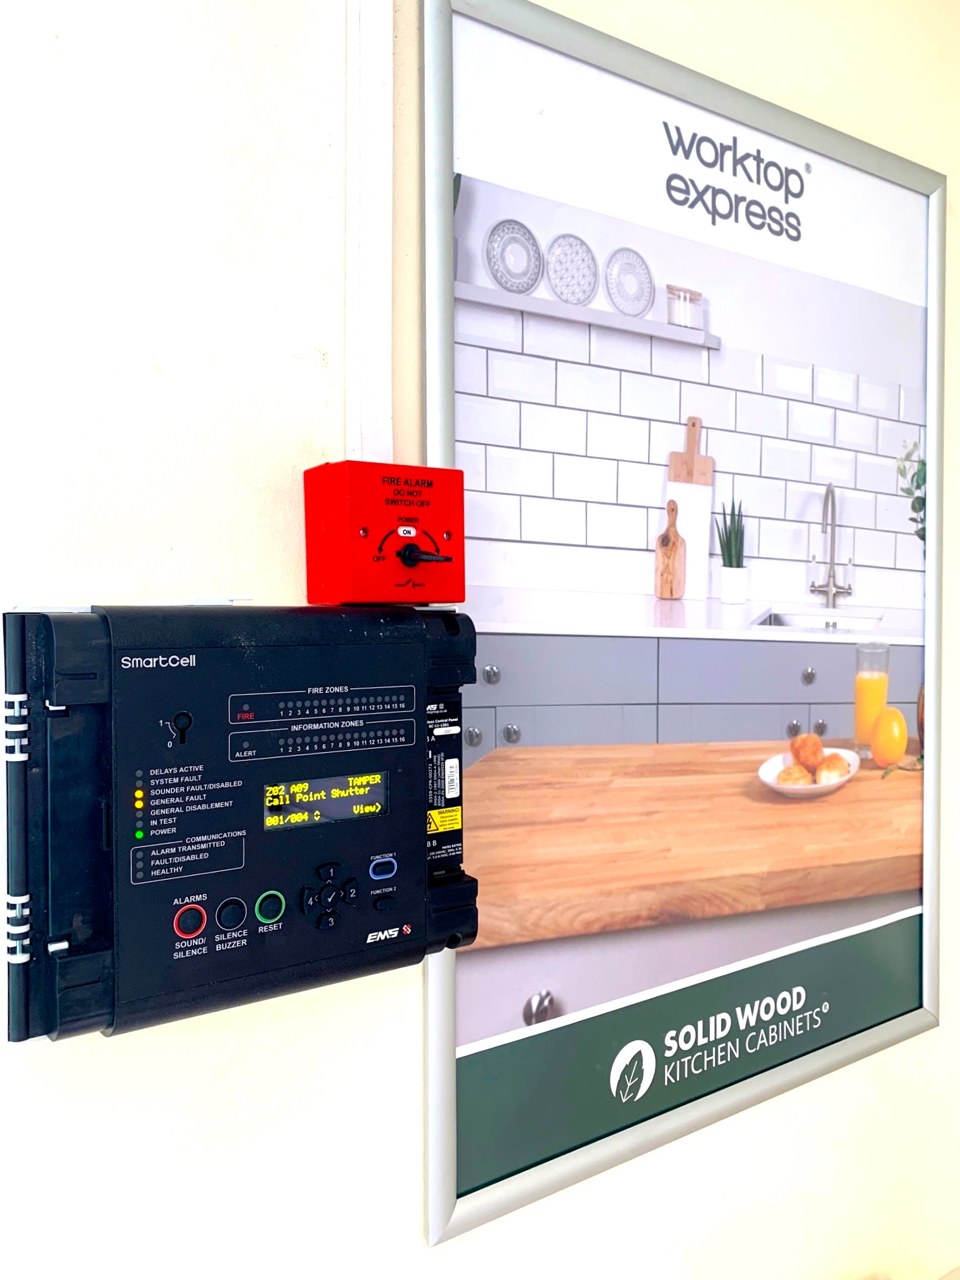 Fire System installing in limited time and on a budget